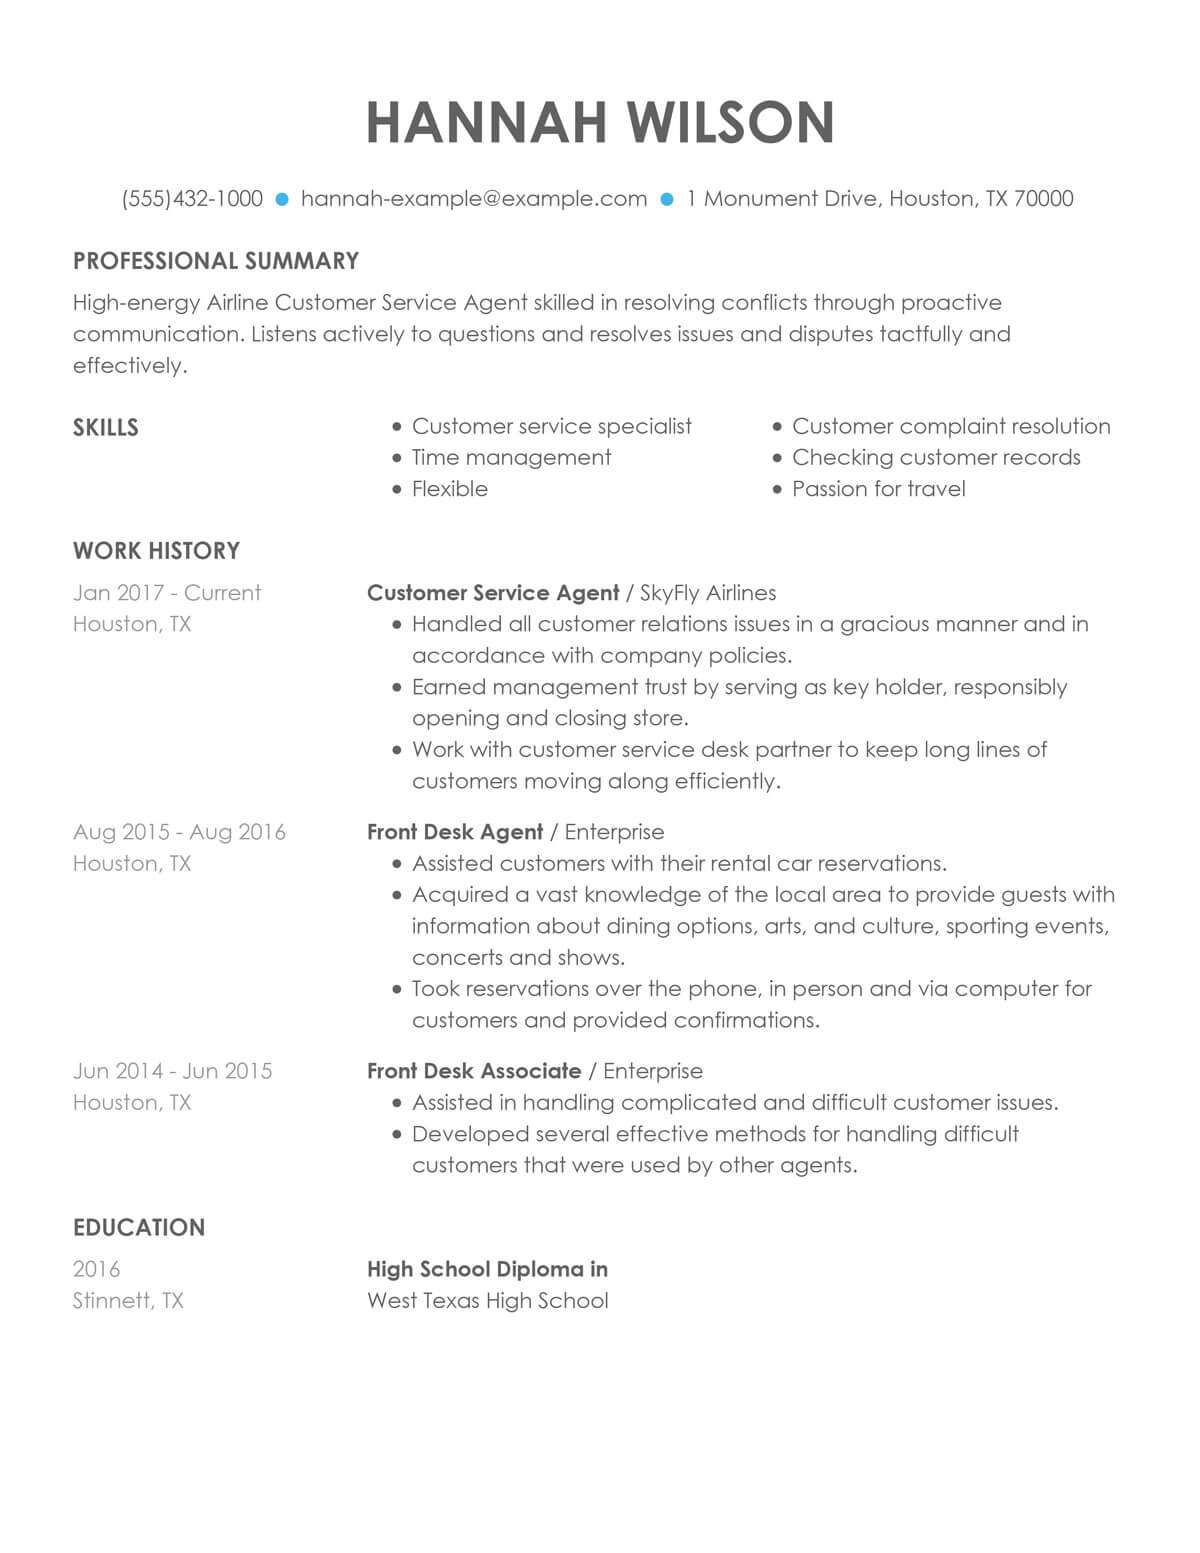 customize our customer representative resume example now service phone number airline Resume Resume Now Customer Service Phone Number